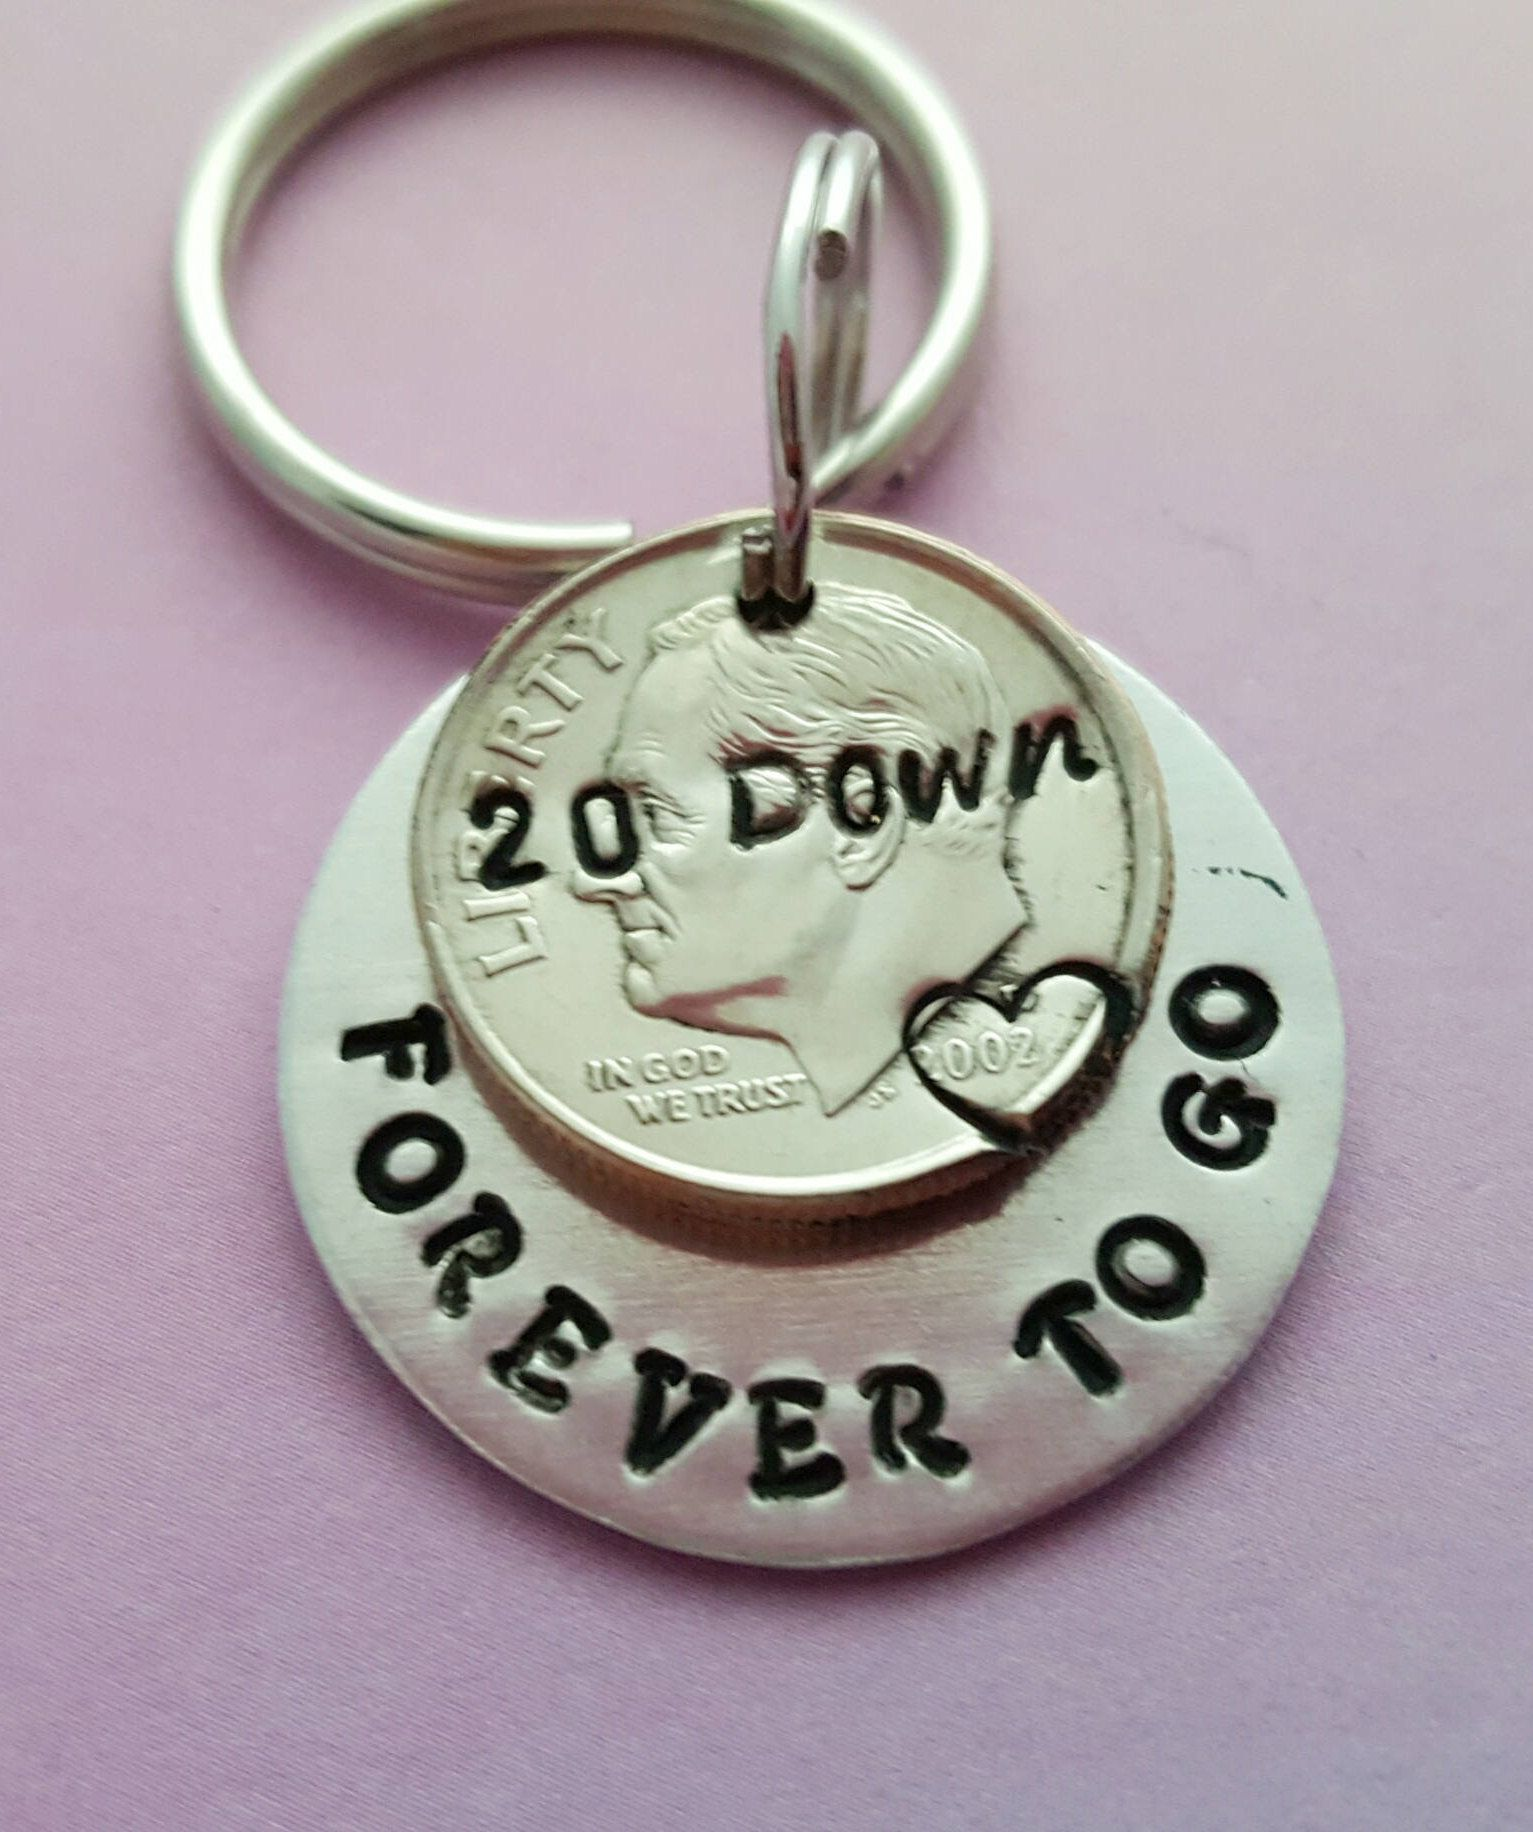 Gifts For Wedding Anniversaries: 20th Anniversary Gift Idea, 20 Year Wedding Anniversary